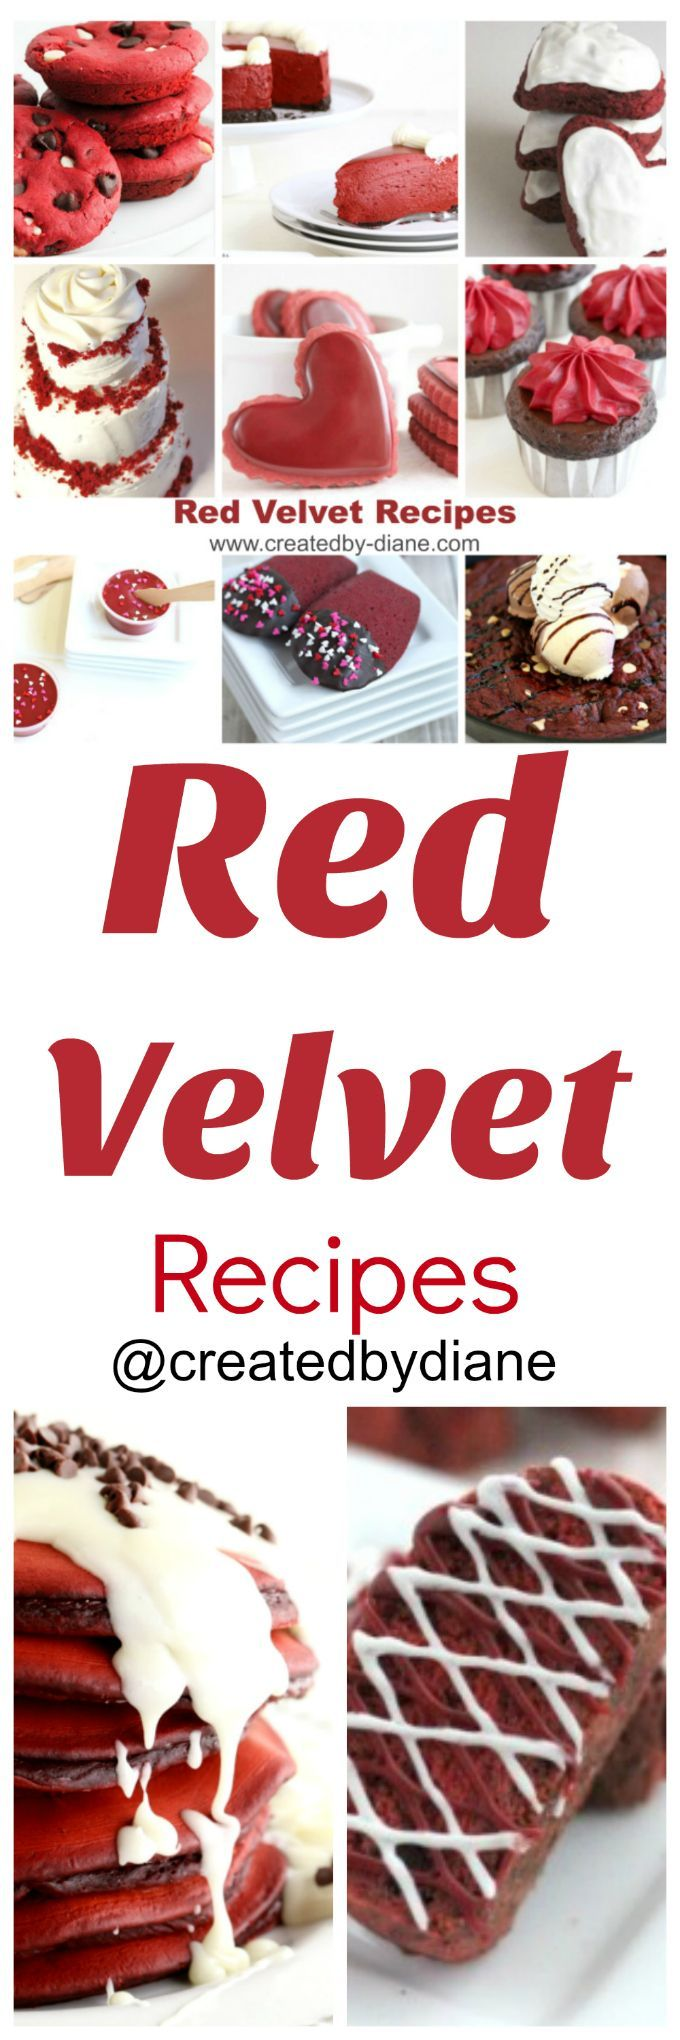 You are sure to find a new favorite among these red velvet recipes!   It's no secret I love red velvet, the color always captures my eye. I love the flavor, it's lightly chocolaty and has a tanginess that is just right.... and I do love RED!, so I've created many red velvet recipes, I gathered some right here in case you've missed any. I've created many red velvet recipes, I gathered some right here in case you've missed any. Dive right in and make one and find yours...